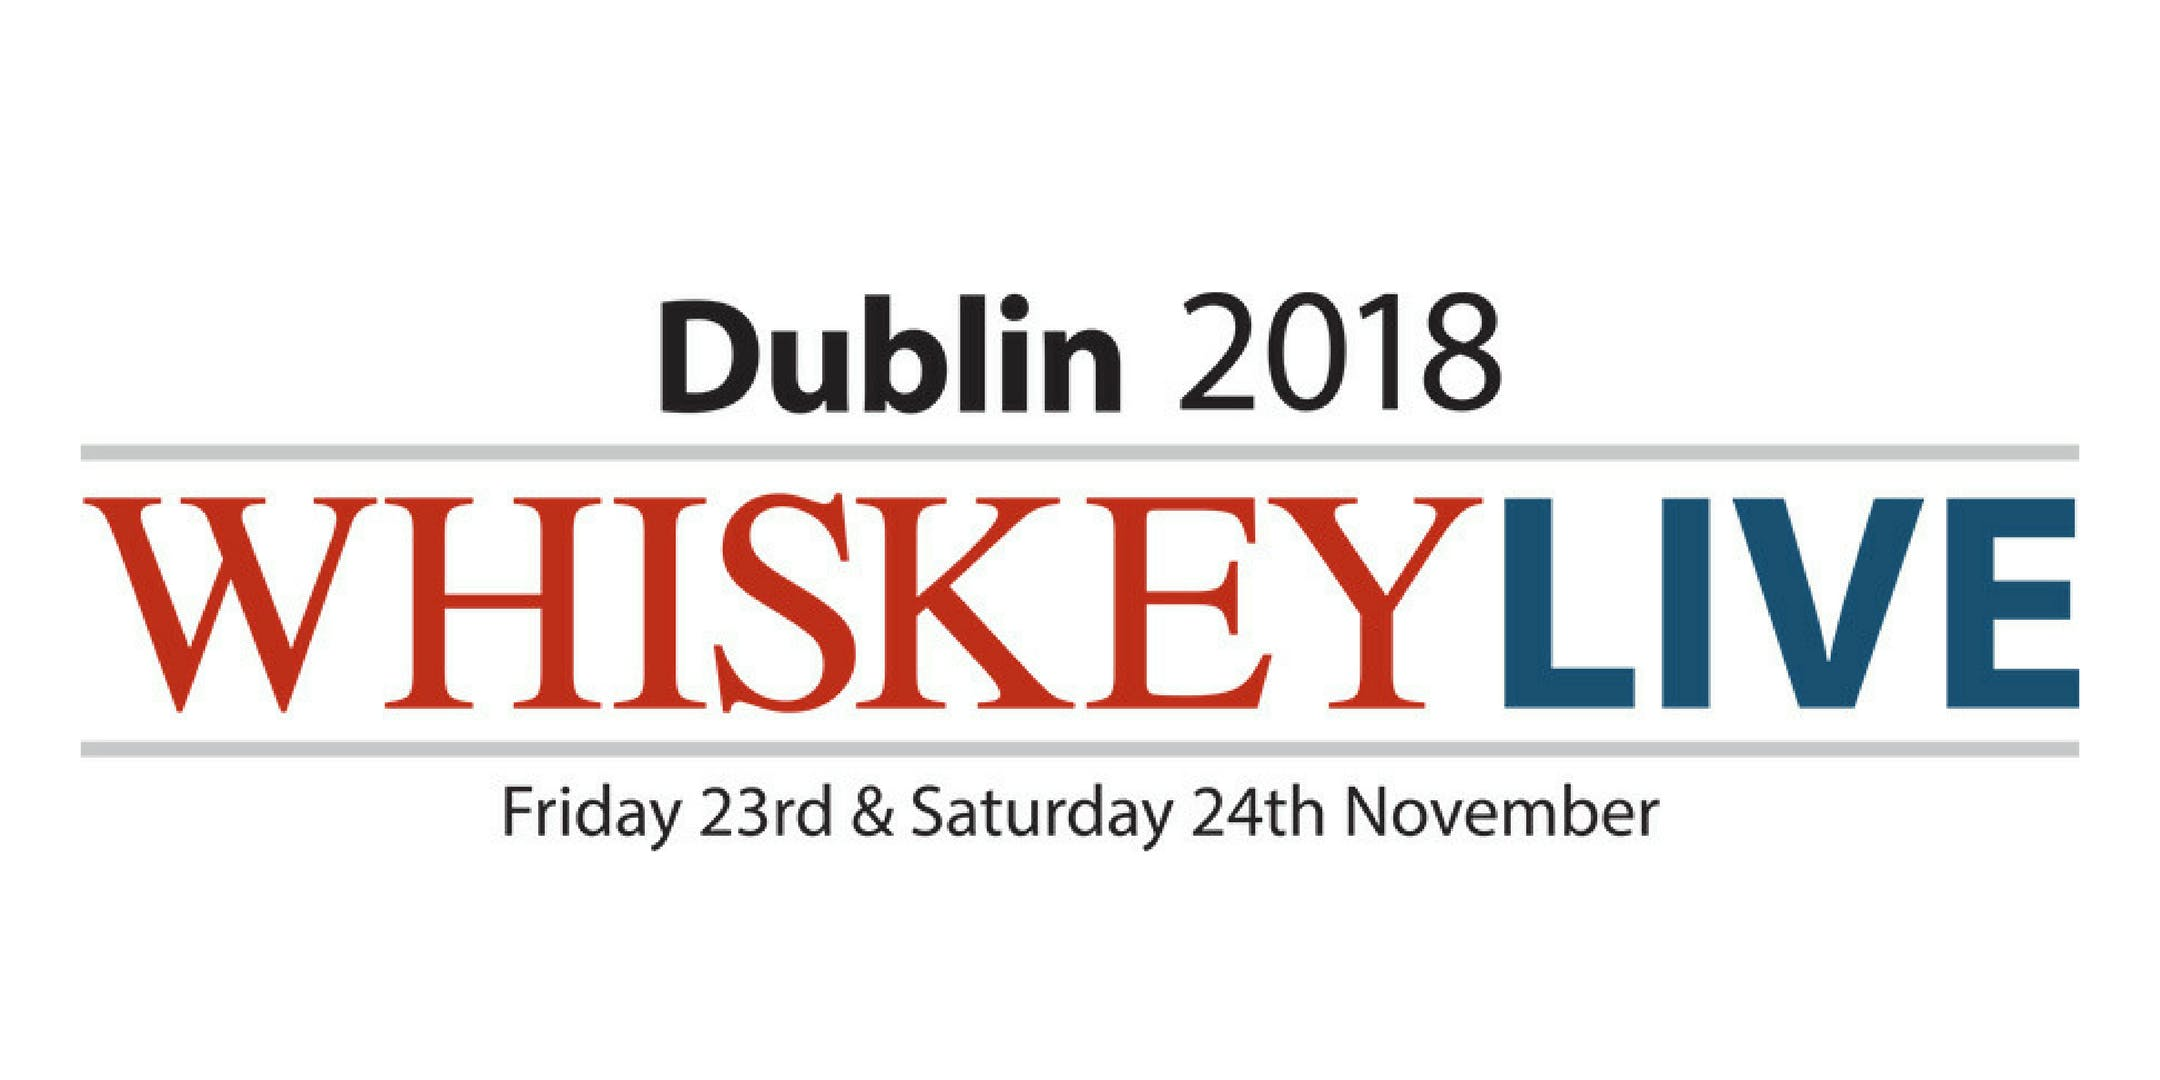 Whiskey Live Dublin 2018 - Friday Session 6.00-9.30pm